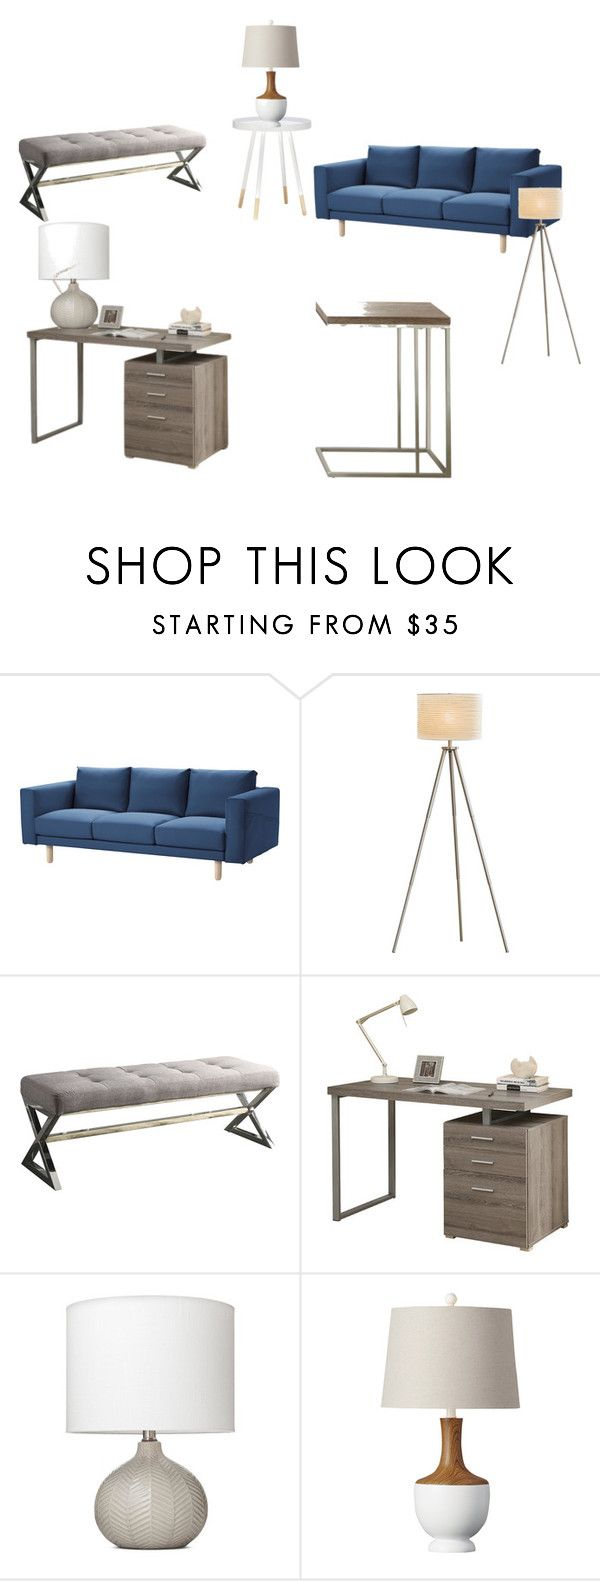 Threshold home decor shop for threshold home decor on polyvore -  Office Look 4 By Jessicacrain On Polyvore Featuring Interior Interiors Interior Design Office Looksoffice Decorhome